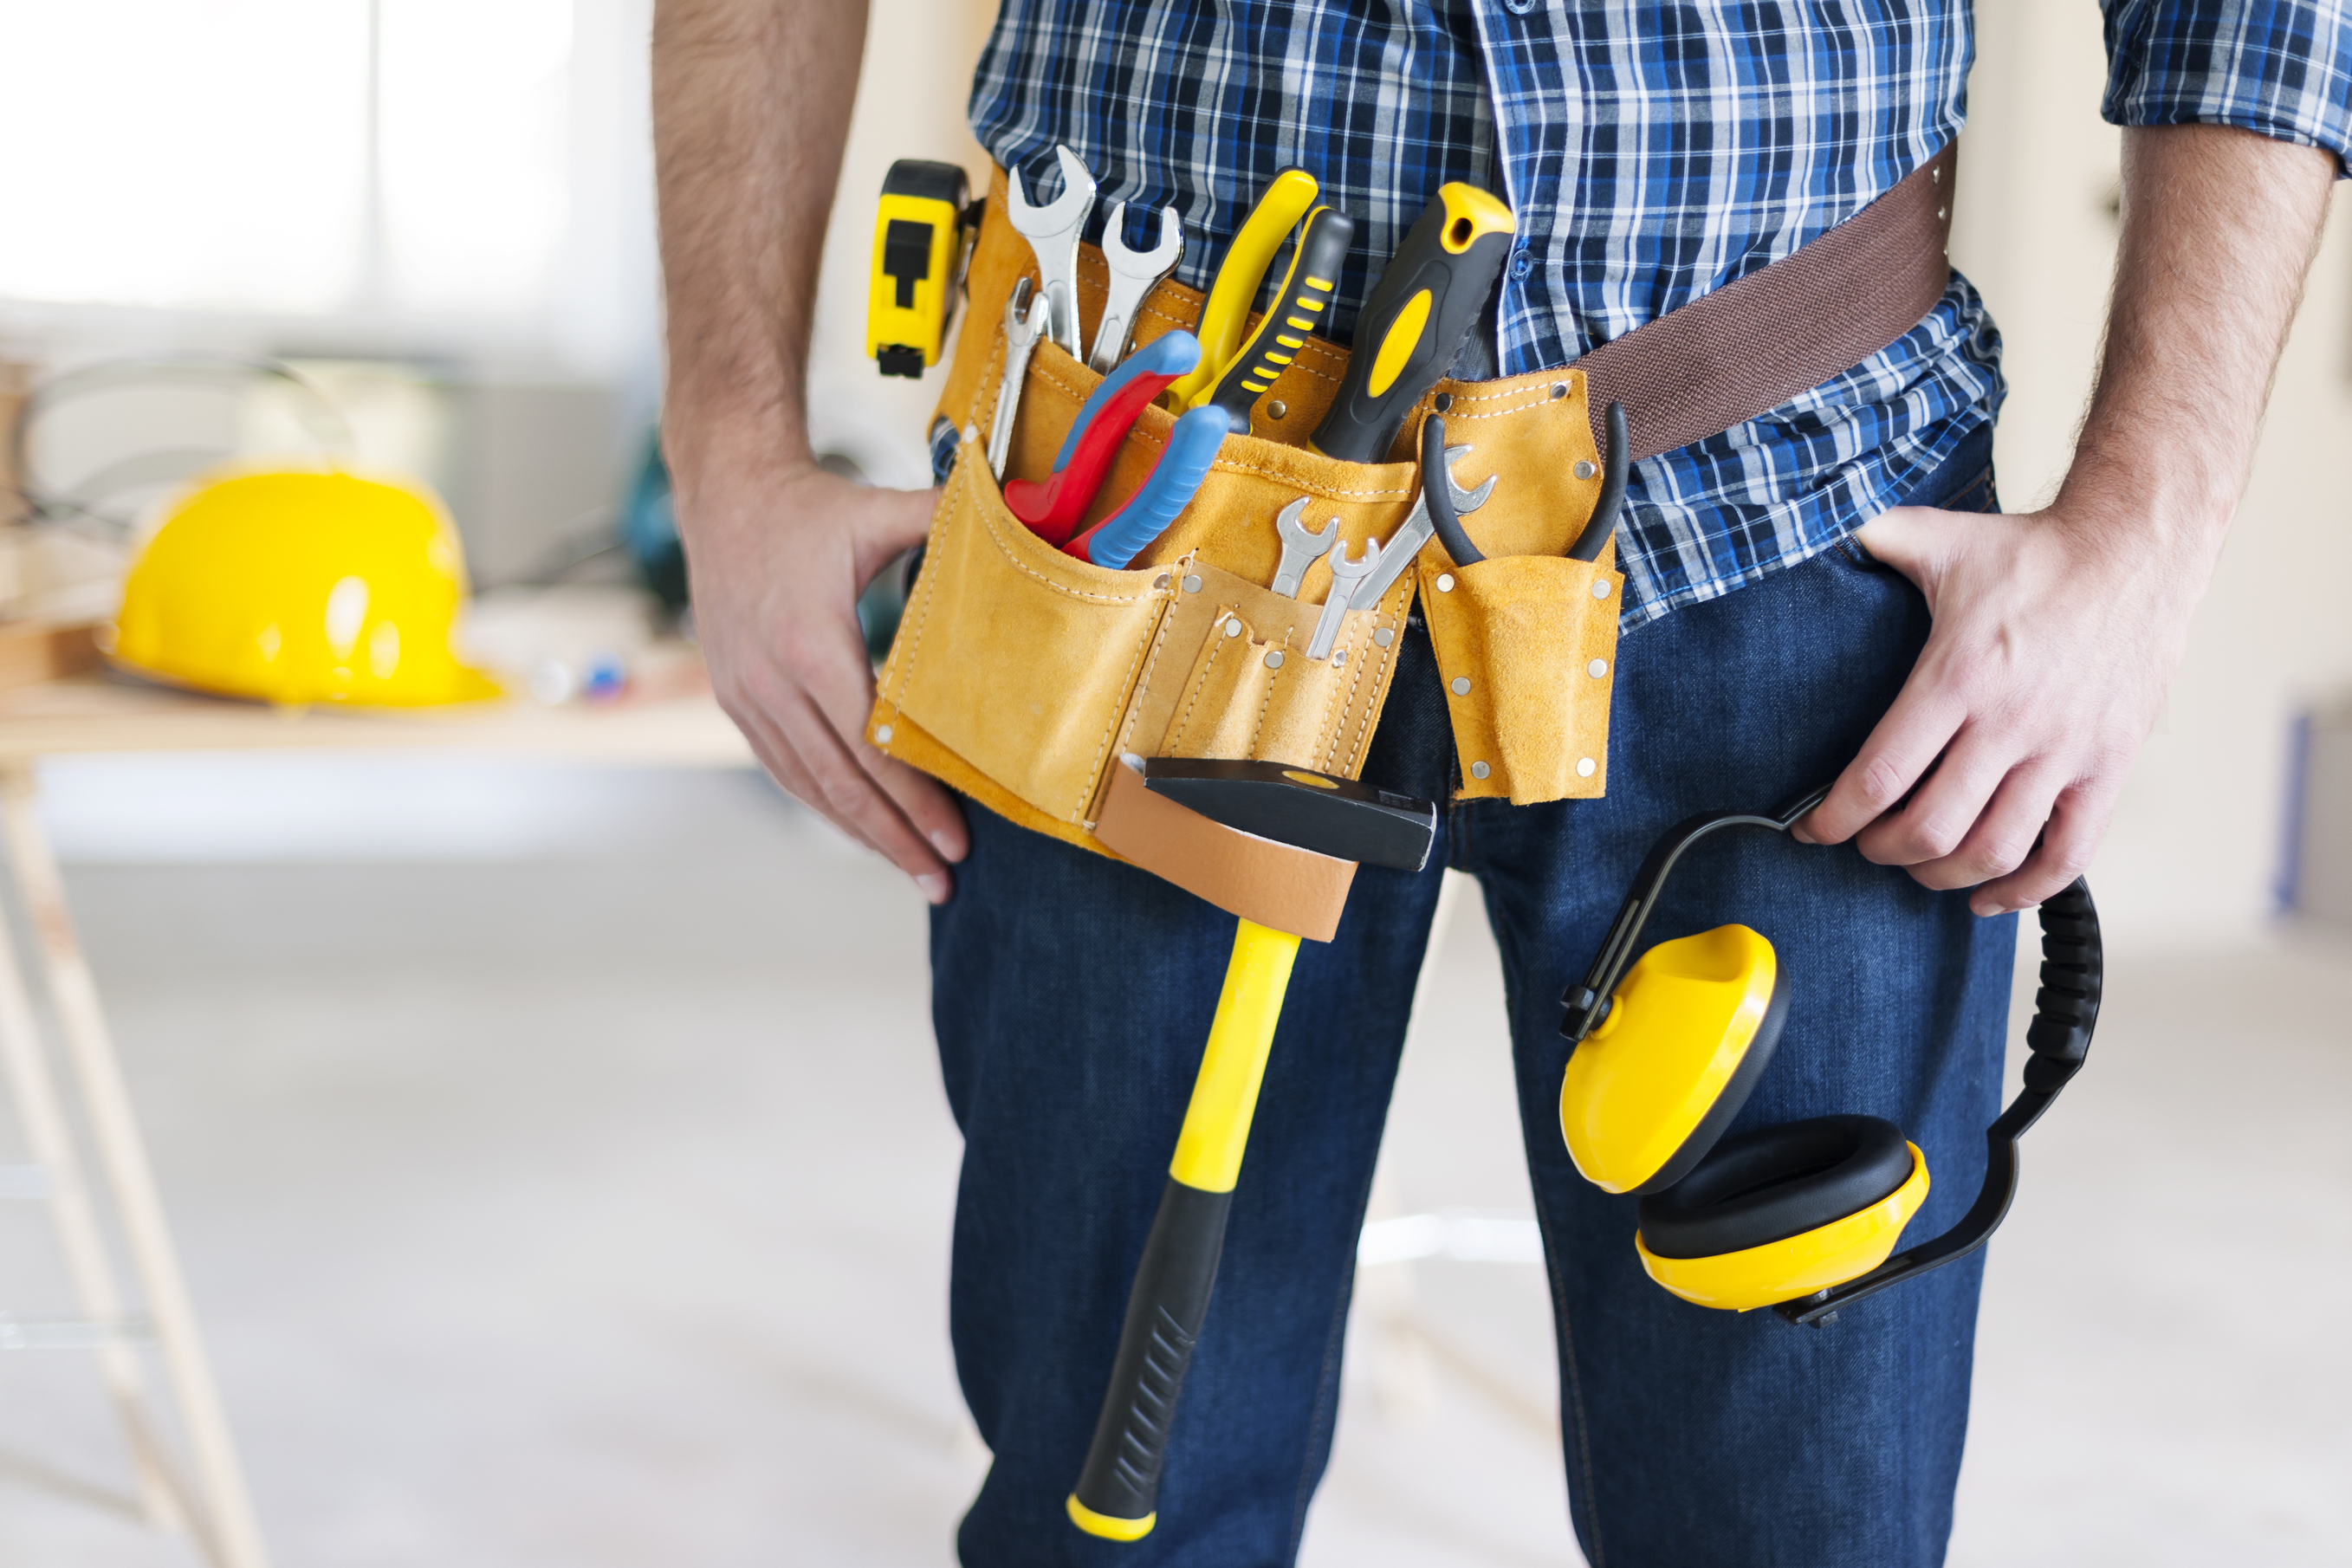 5 Things You Should Know Before You Decide to Renovate a House